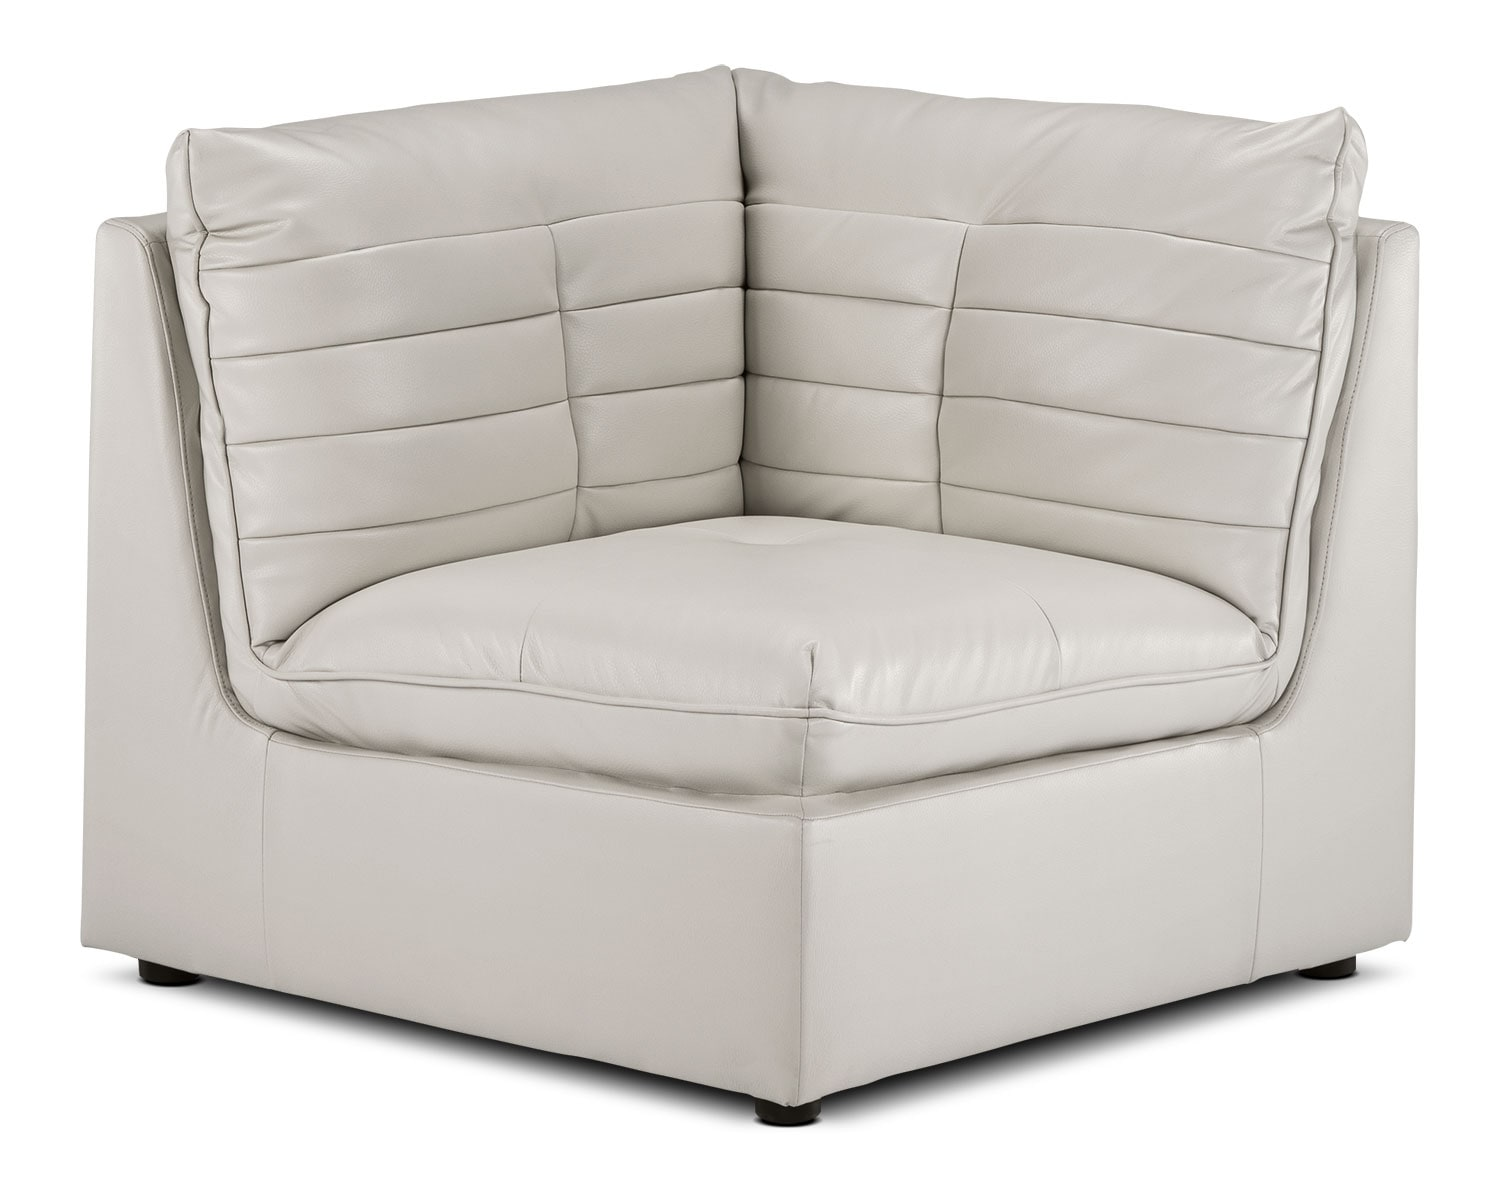 Living Room Furniture - Cortina Corner Chair